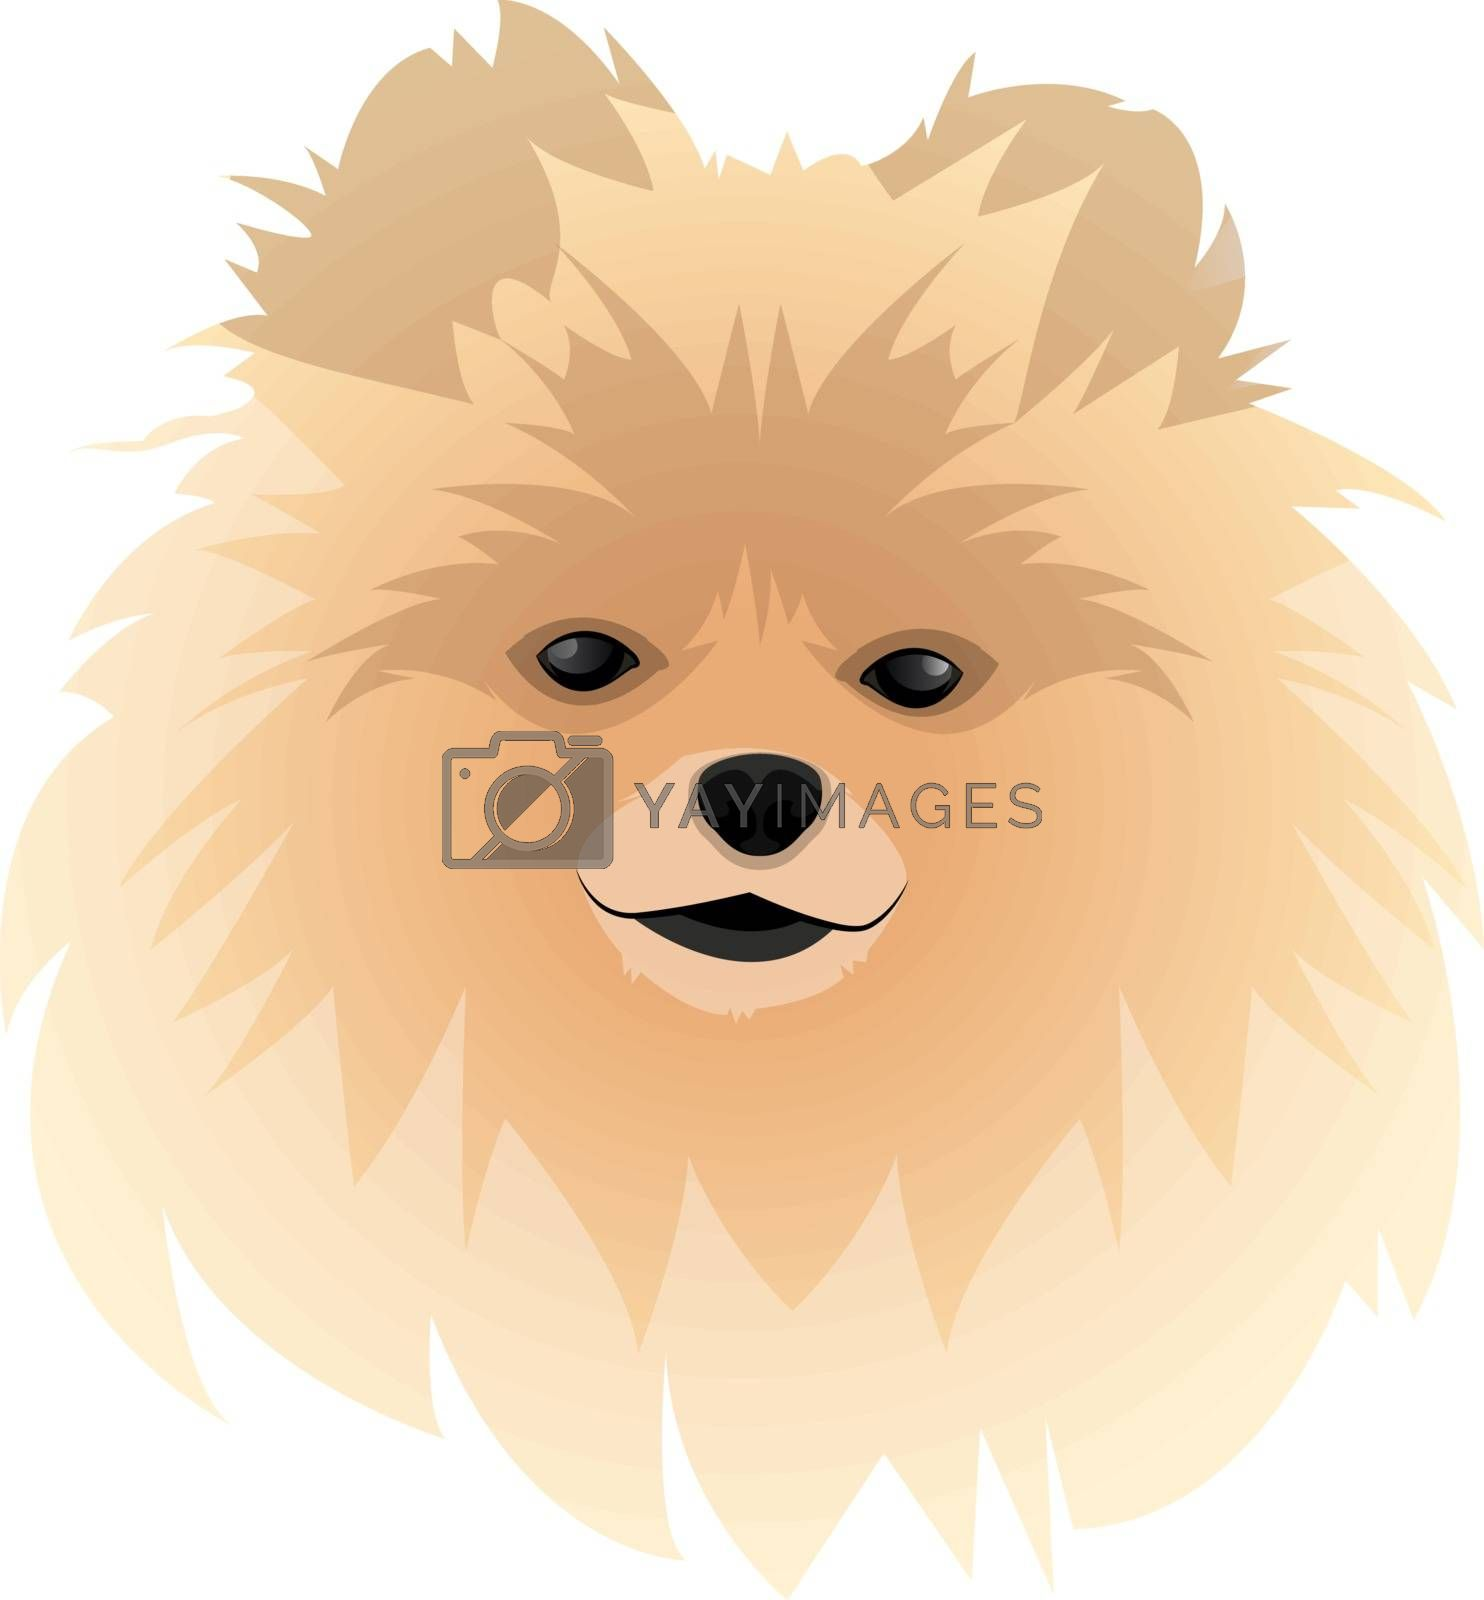 Royalty free image of Spitz illustration vector on white background by Morphart